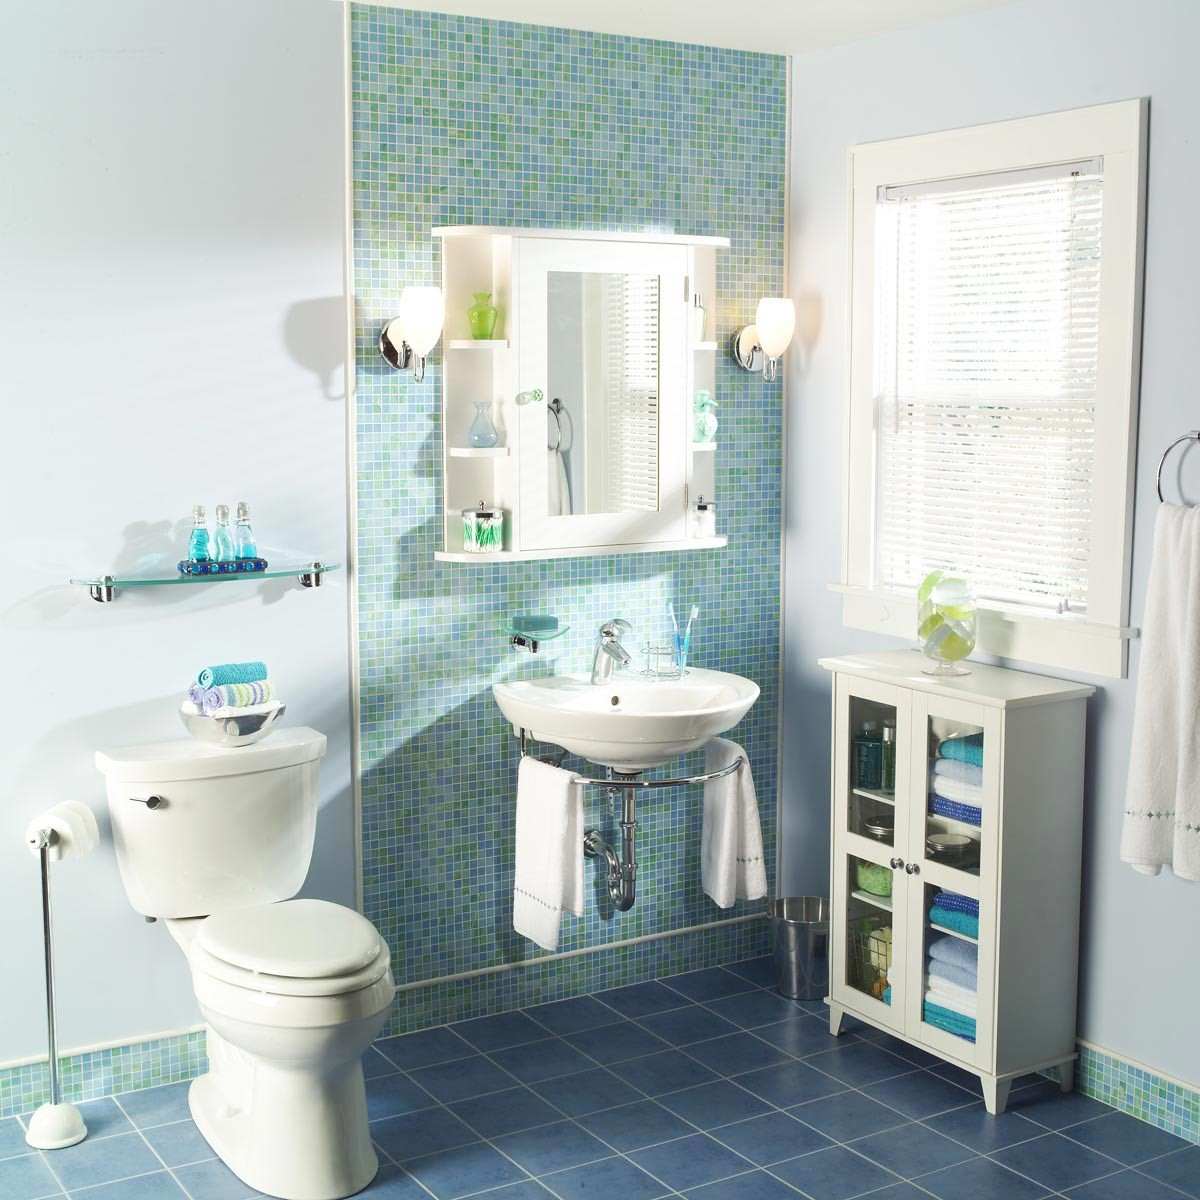 7 Tired Bathroom has Turned into Coastal themed Bathroom via Simphome After